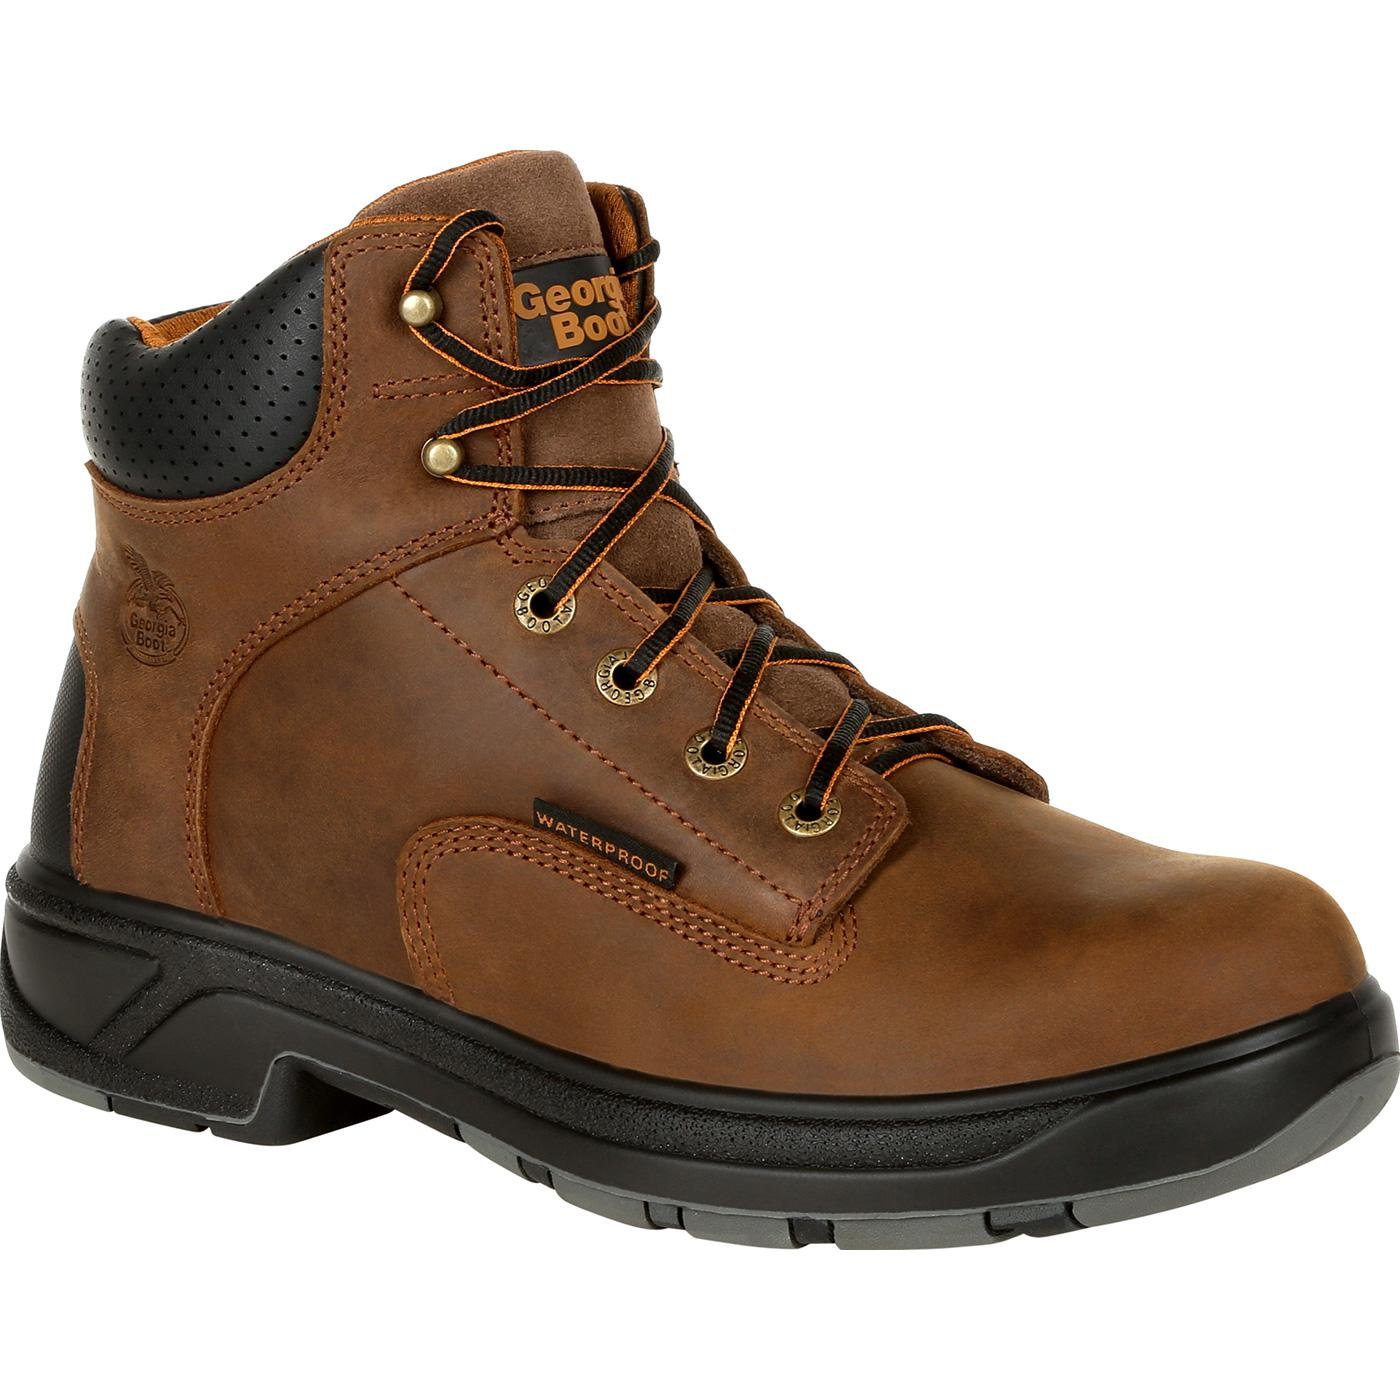 5f2343e9b57 Georgia Boot  Men s FLXPoint Comfort Waterproof Work Boots